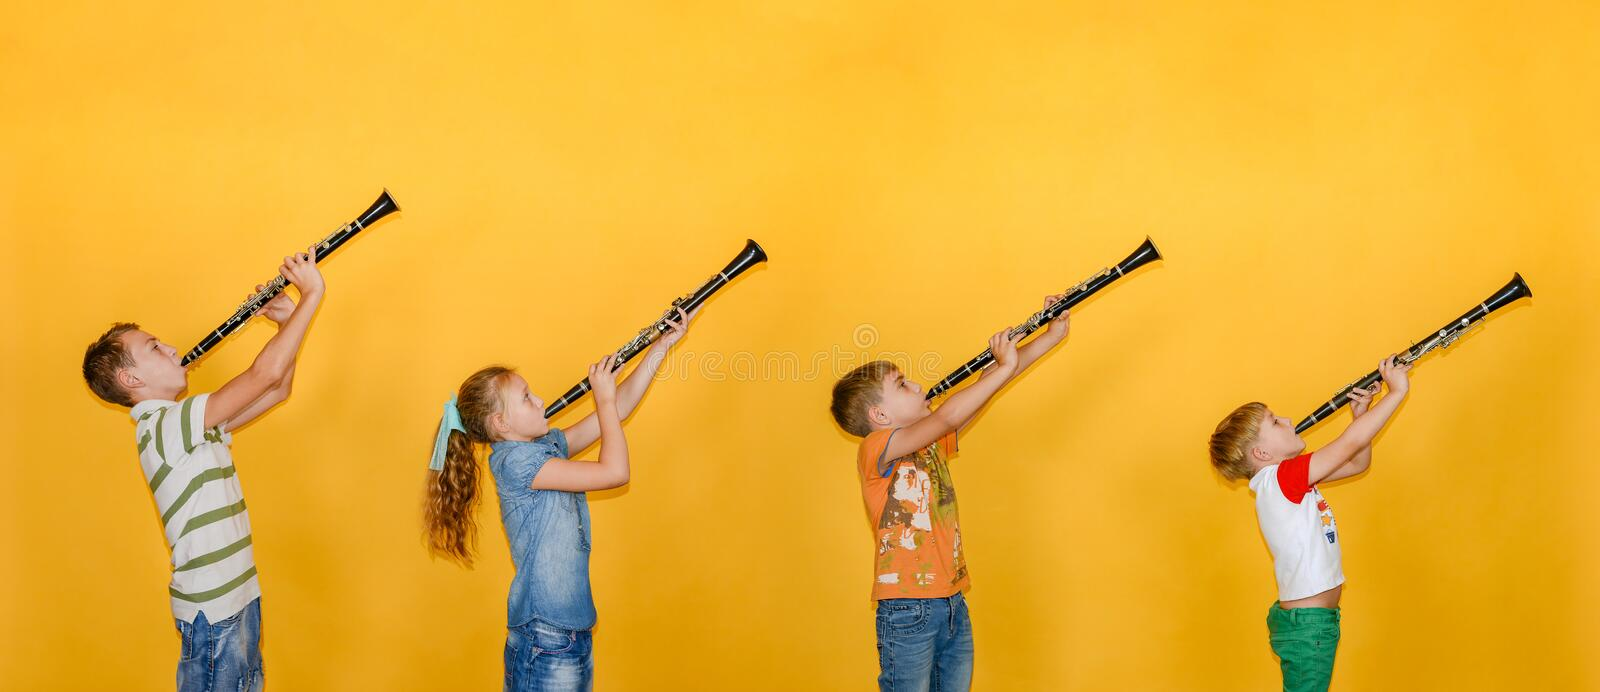 Four people, a musician, stand in a row and play clarinets, photos of children on a yellow background royalty free stock photos